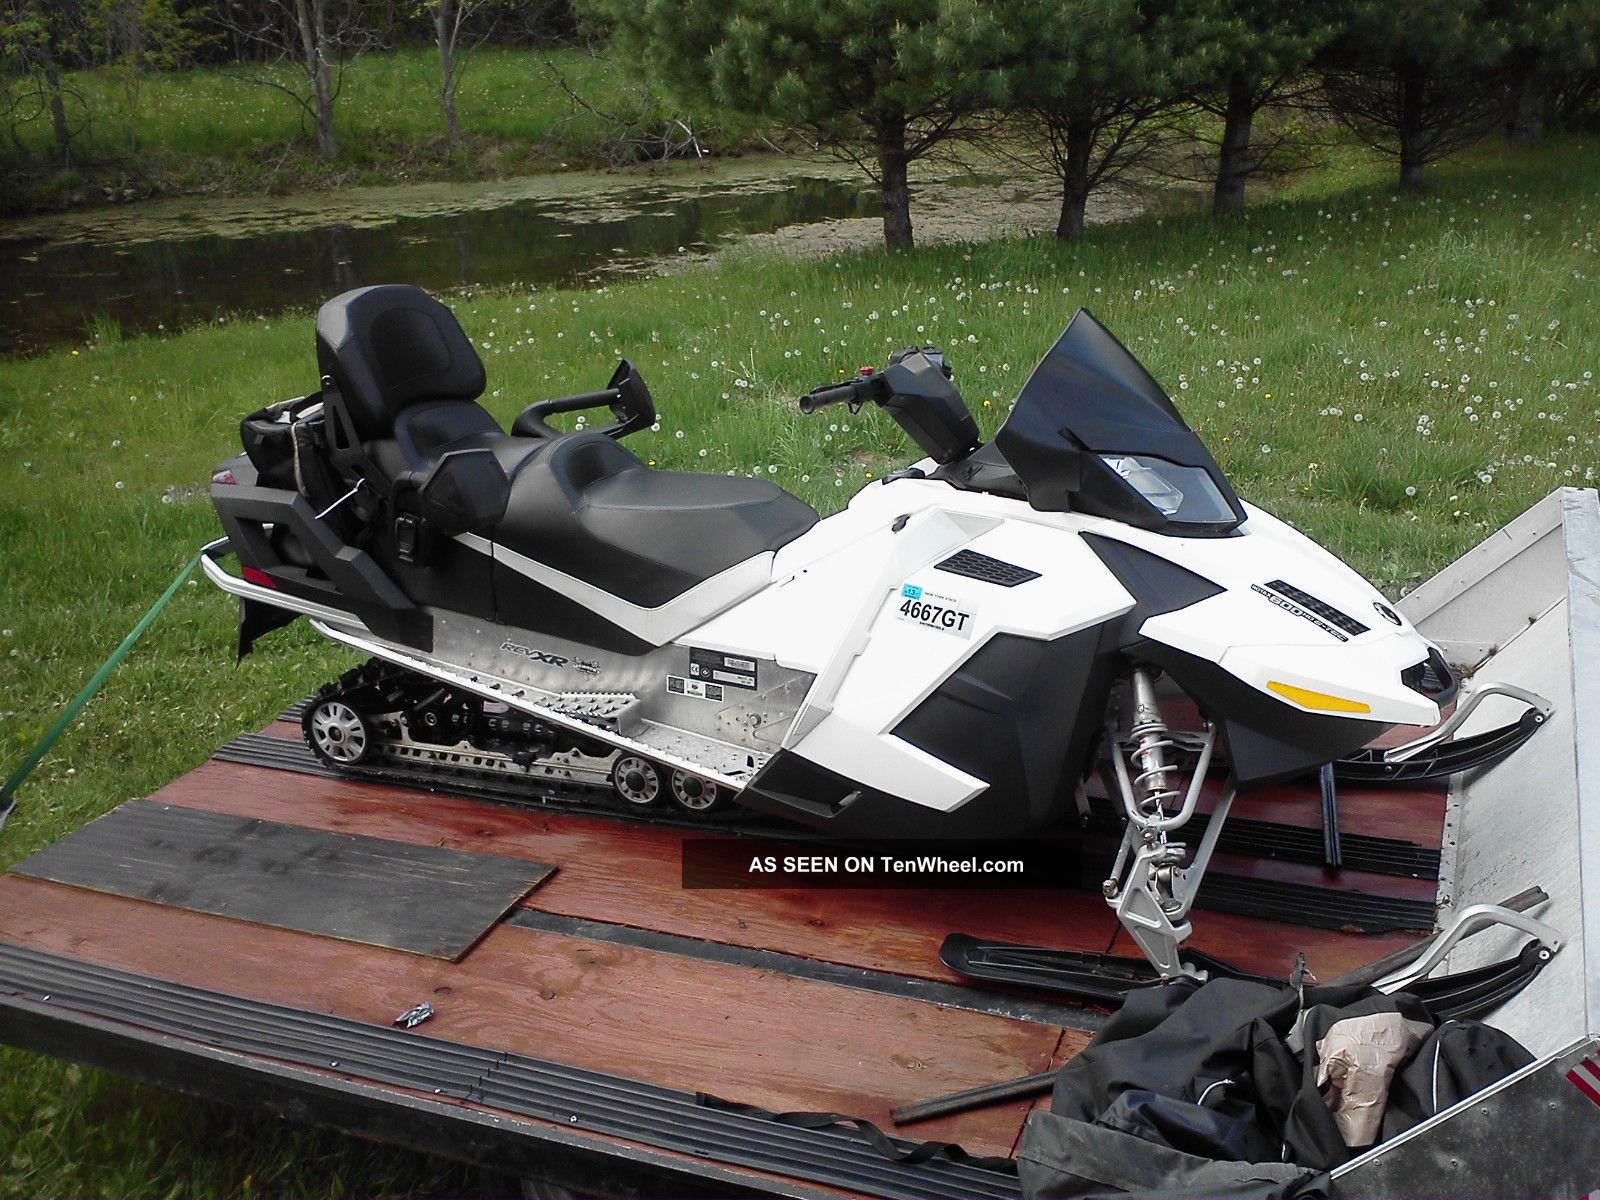 2010 Ski - Doo Gsx Grand Touring Le Ski-Doo photo